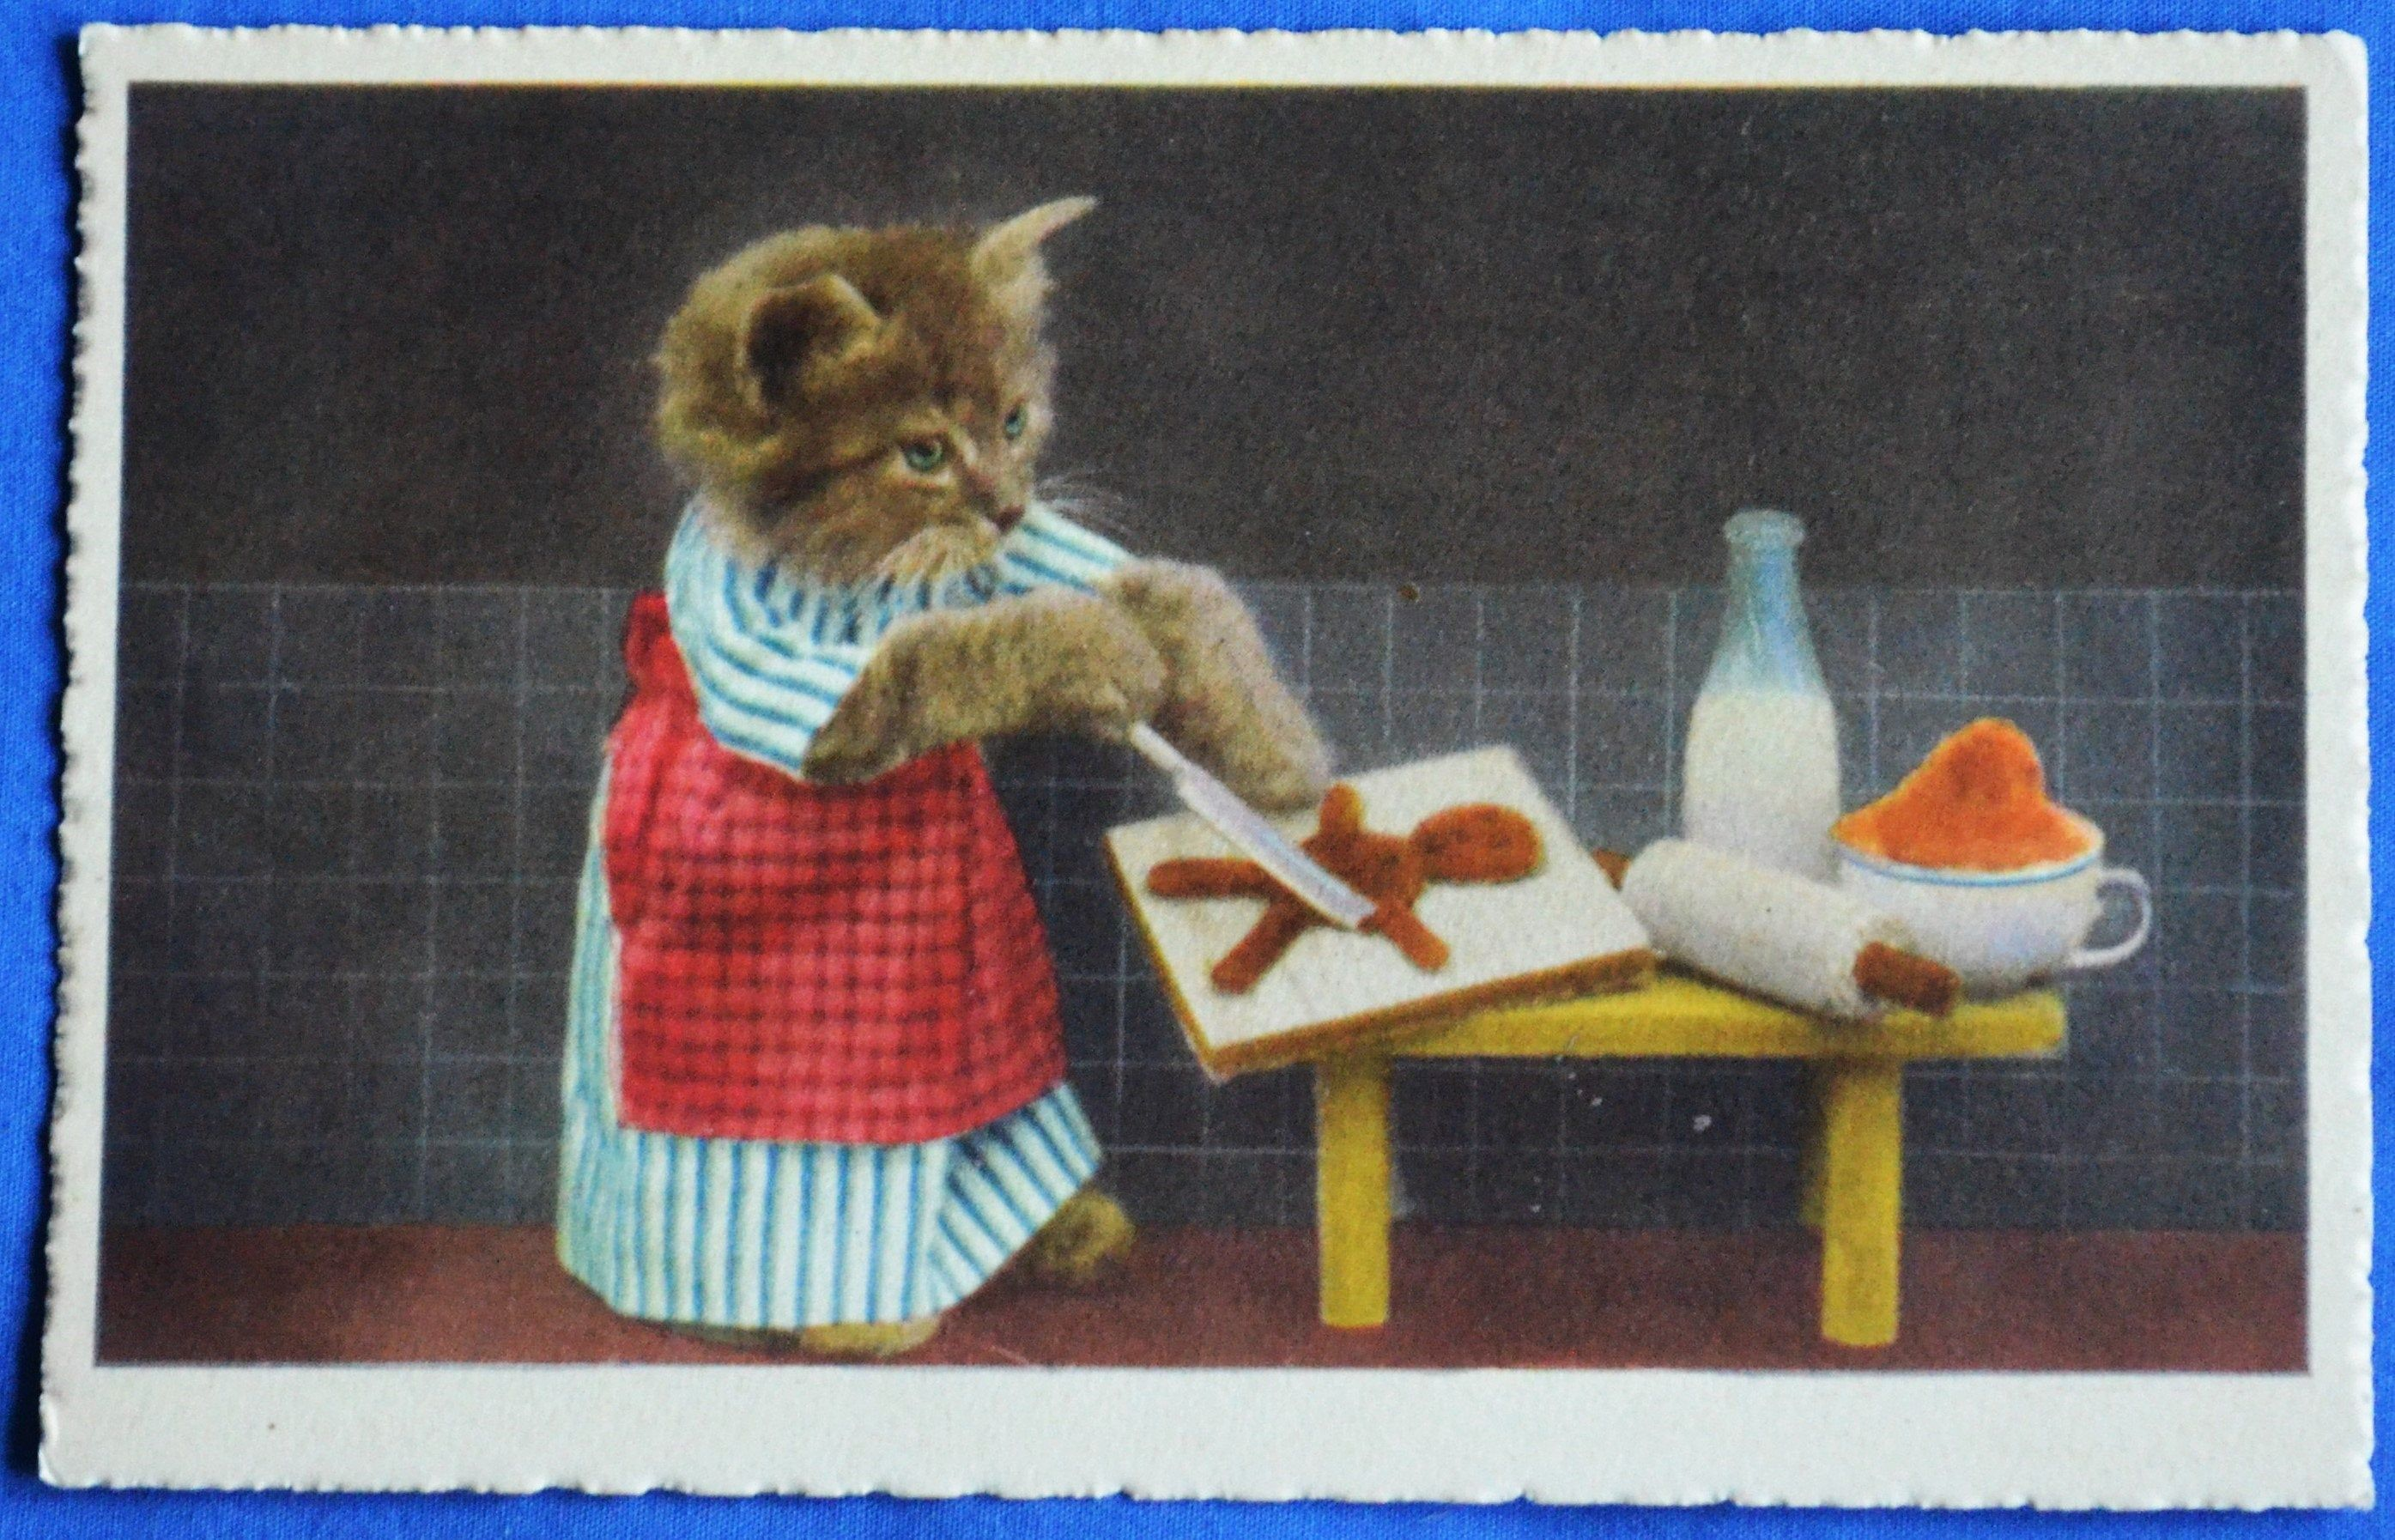 Comic Dressed Gray Cat Kitten Apron Making Gingerbread Men Postcard With Images Cats And Kittens Grey Cats Kittens